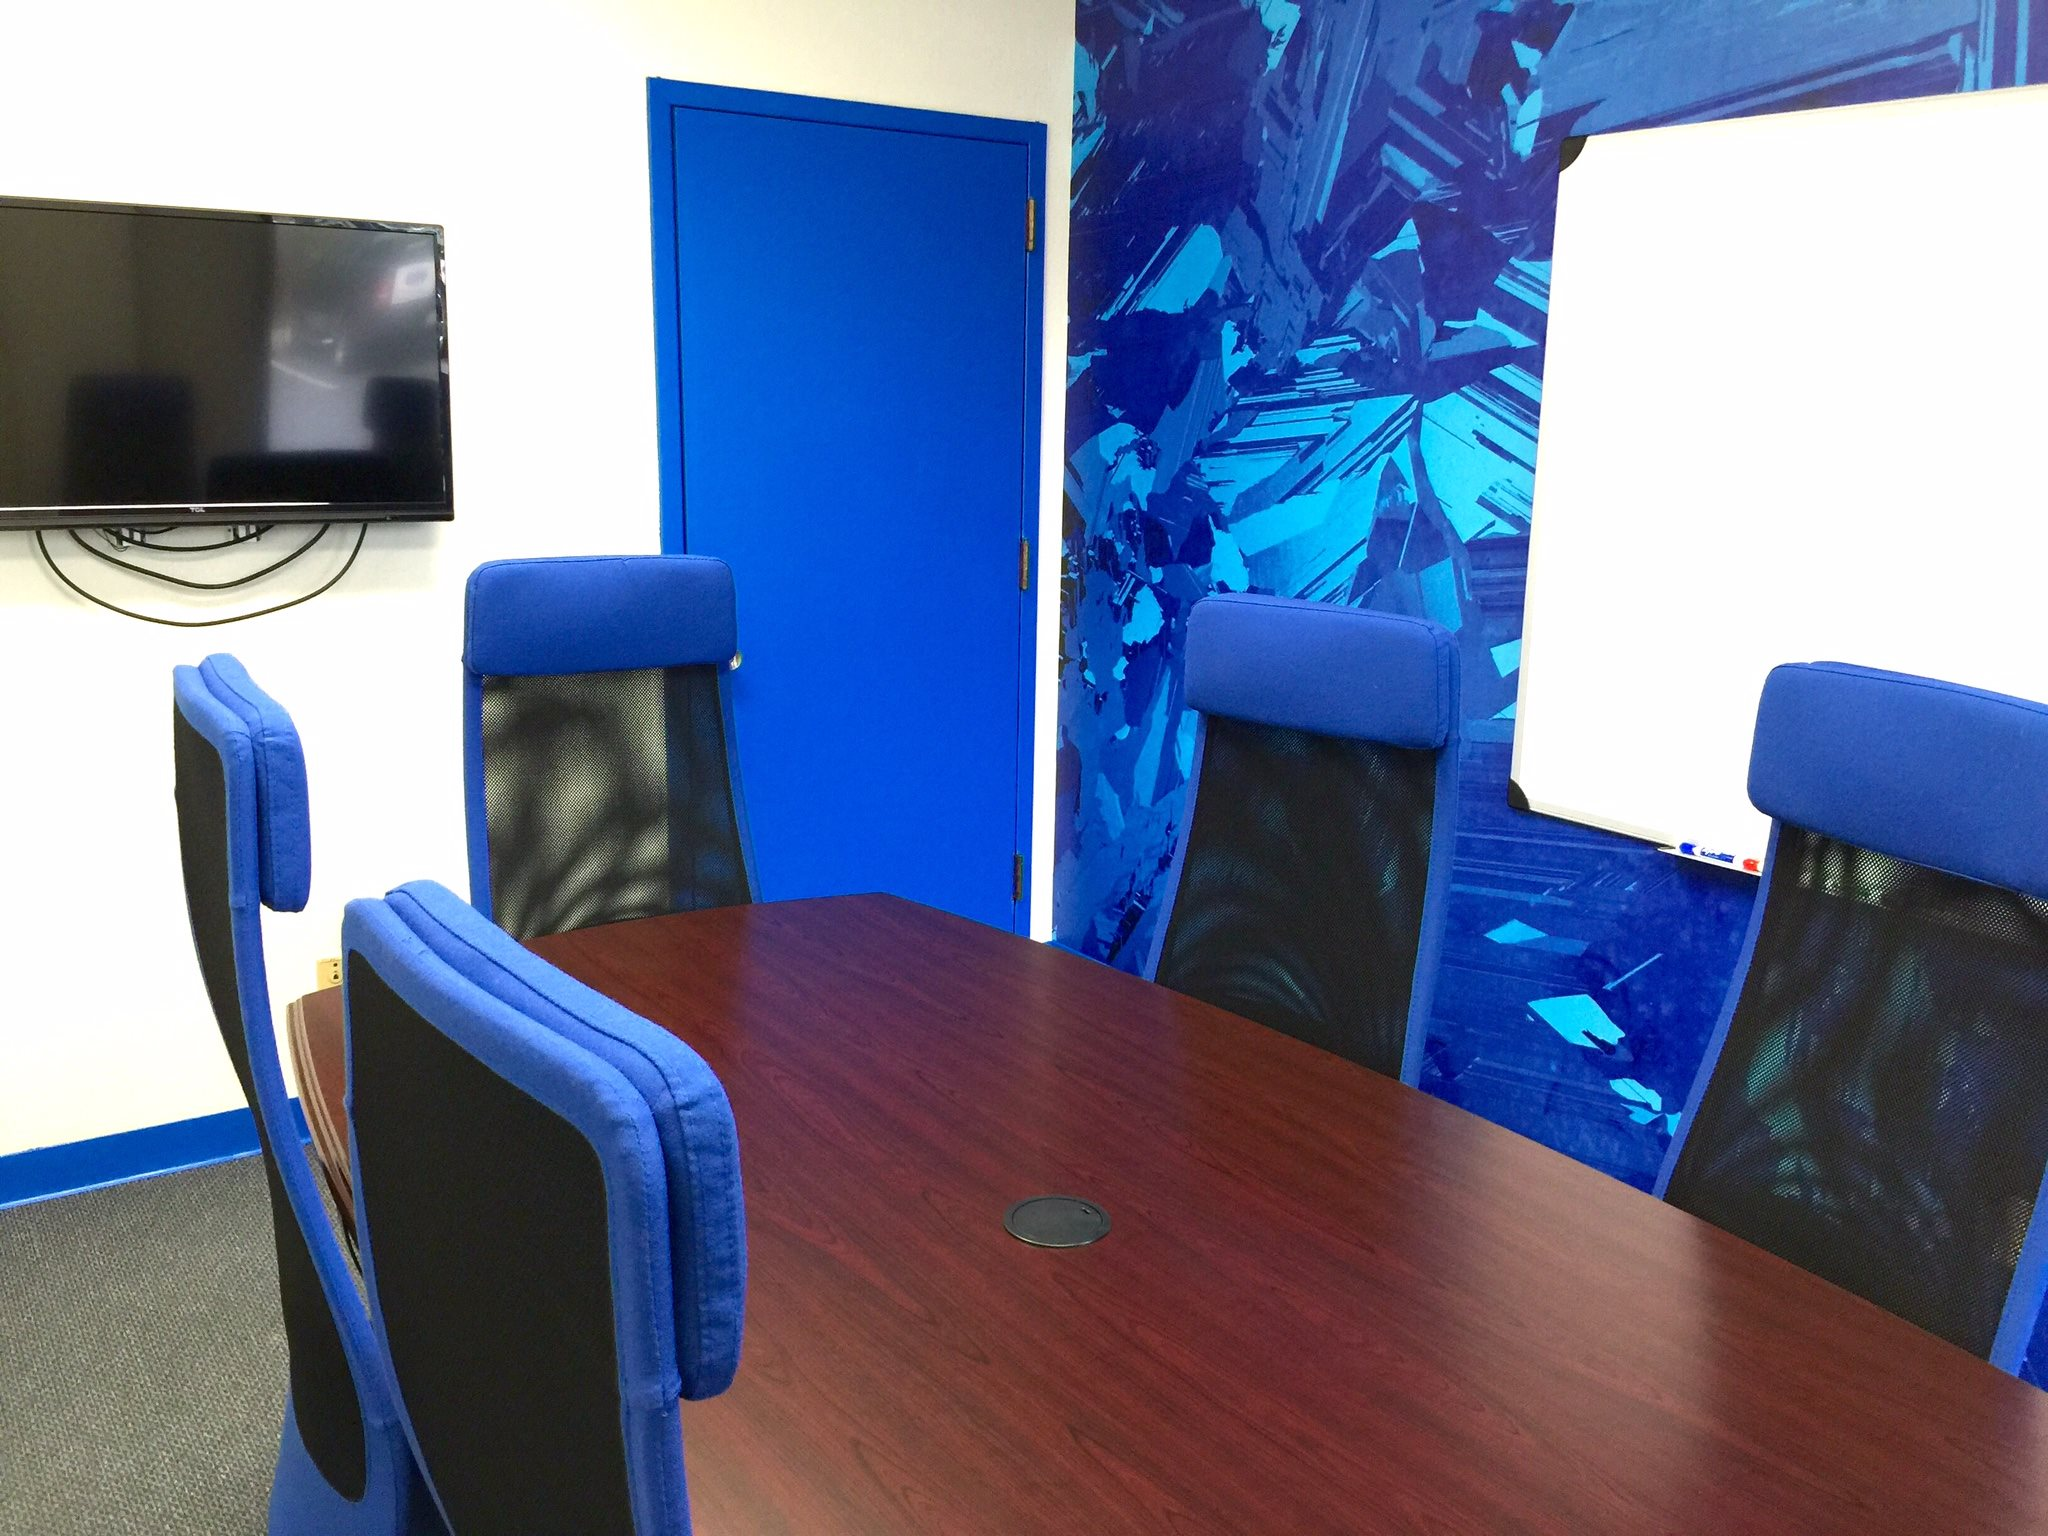 Accent wall in meeting room was given the same Silicon Joule graphic pattern as lobby to tie the two spaces together. Door also painted Gridtential blue.